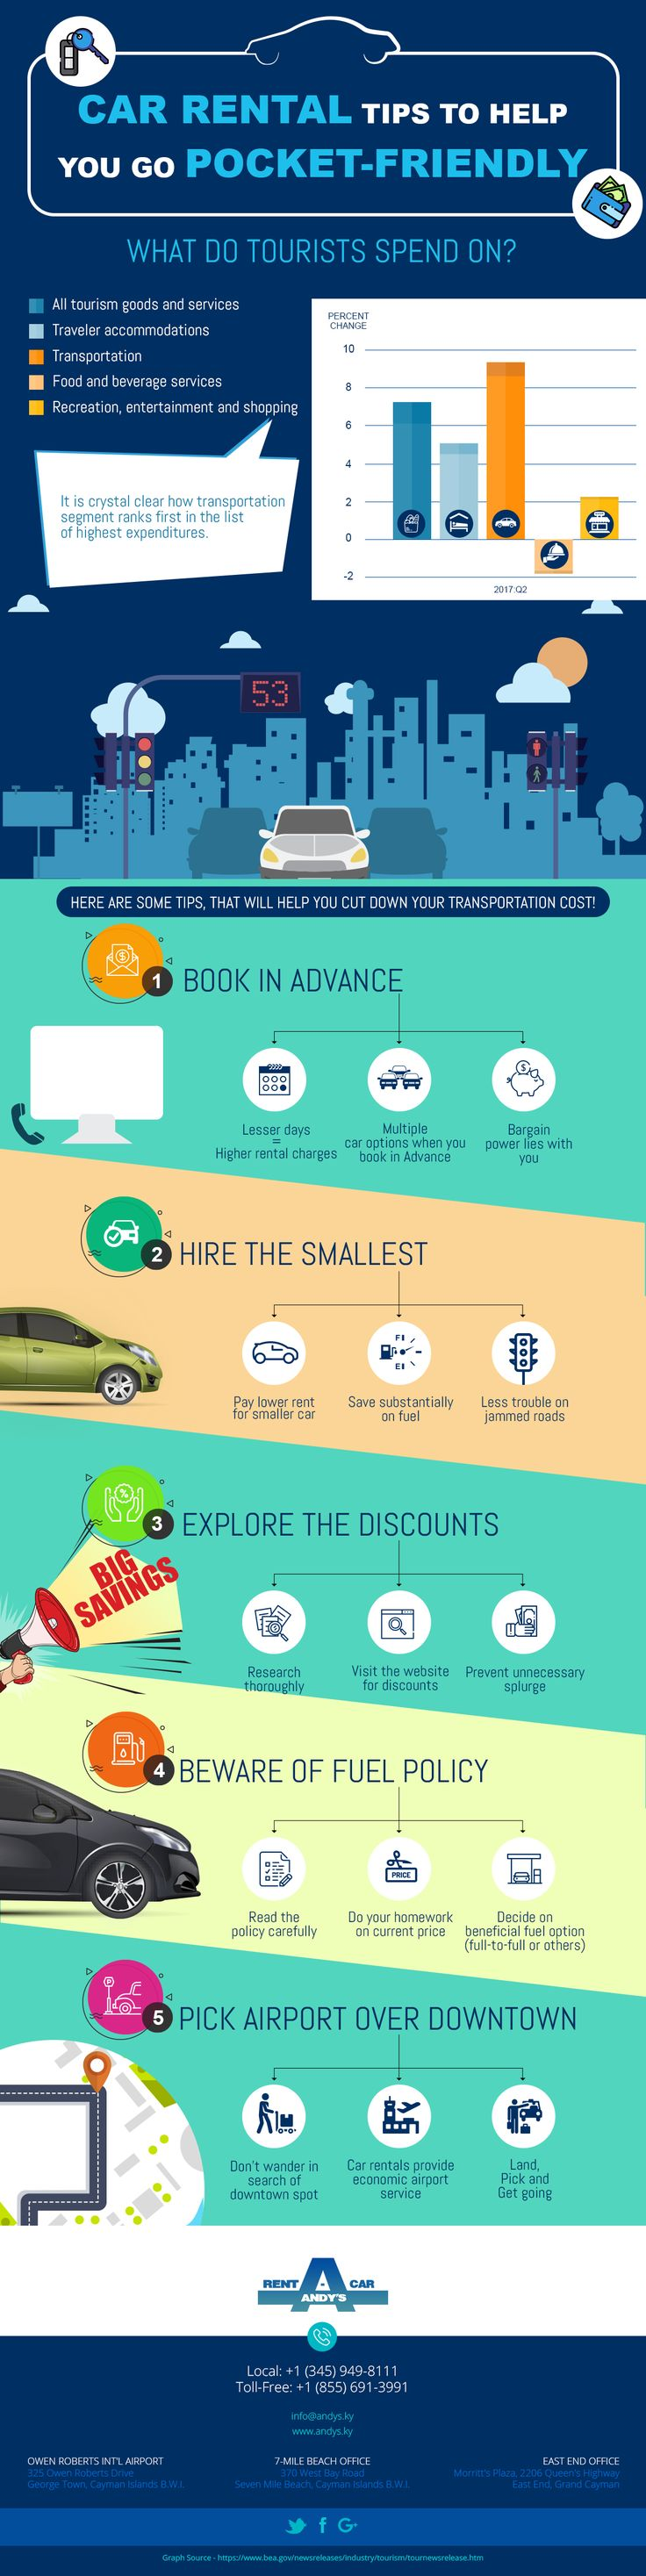 In this visual, get car rental tips which will help you go pocket-friendly. Some tips that will help you cut down your transportation cost include booking in advance, hiring the smallest possible car, exploring the discounts offered by car rental companies, staying alert on fuel policy, and selecting airport as your pick-up location. Here you go for more: http://www.andys.ky/ #carrentalincayman #Caribbeancarrental